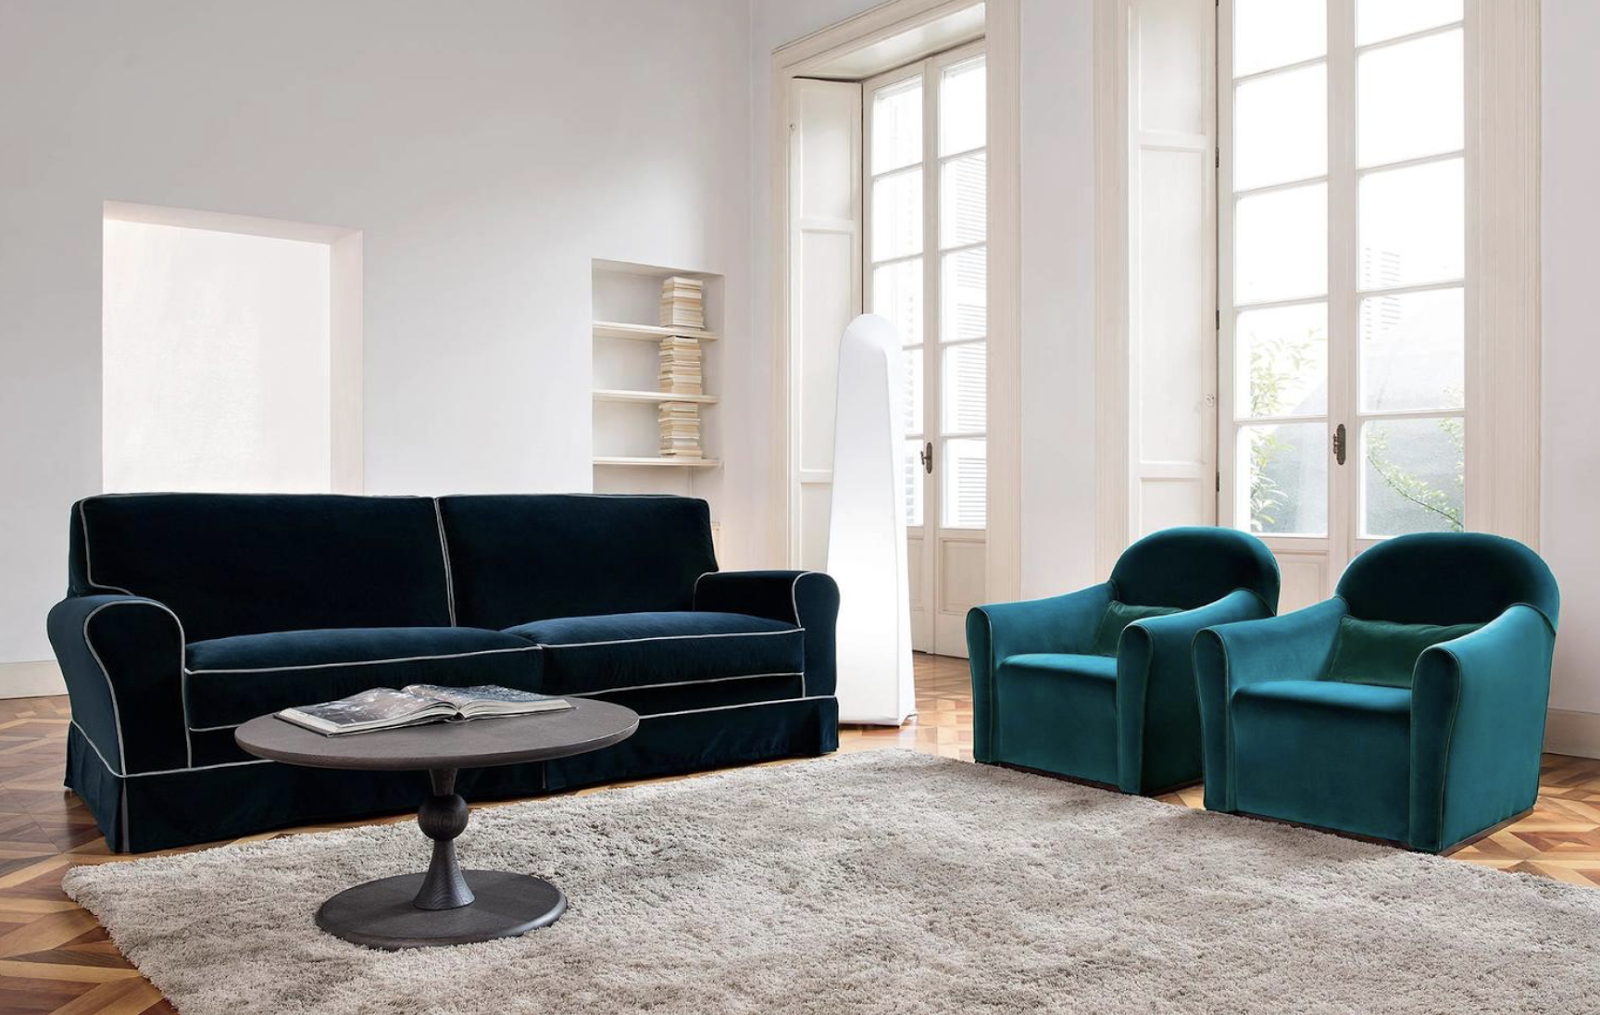 Momentoitalia italian furniture blog an italian for Sofa 1 5 sitzer